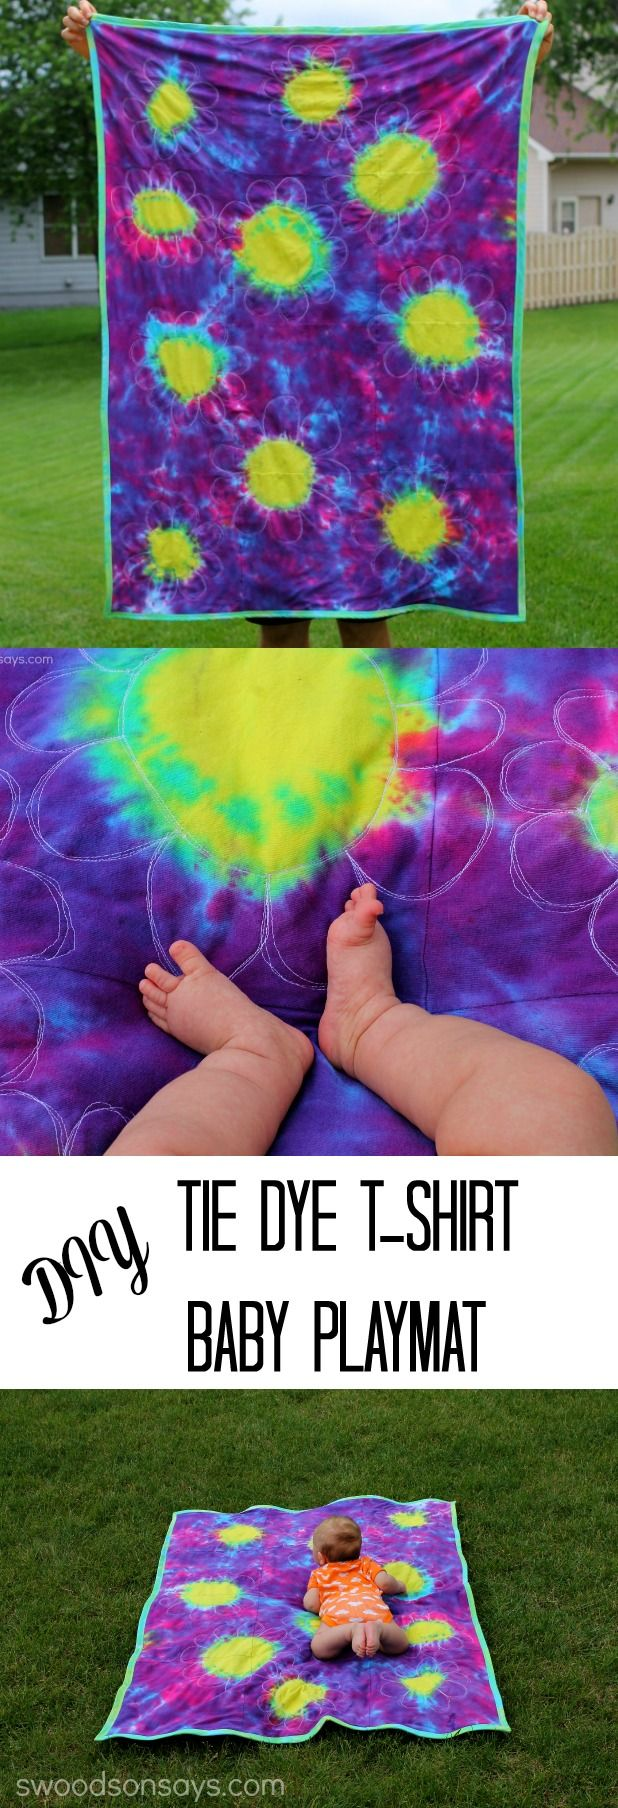 Transform a pile of old white t-shirts into a fun tie dyed quilt! Perfect as a baby playmat or picnic blanket, this upcycled sewing project uses the sunburst technique for tie dye.